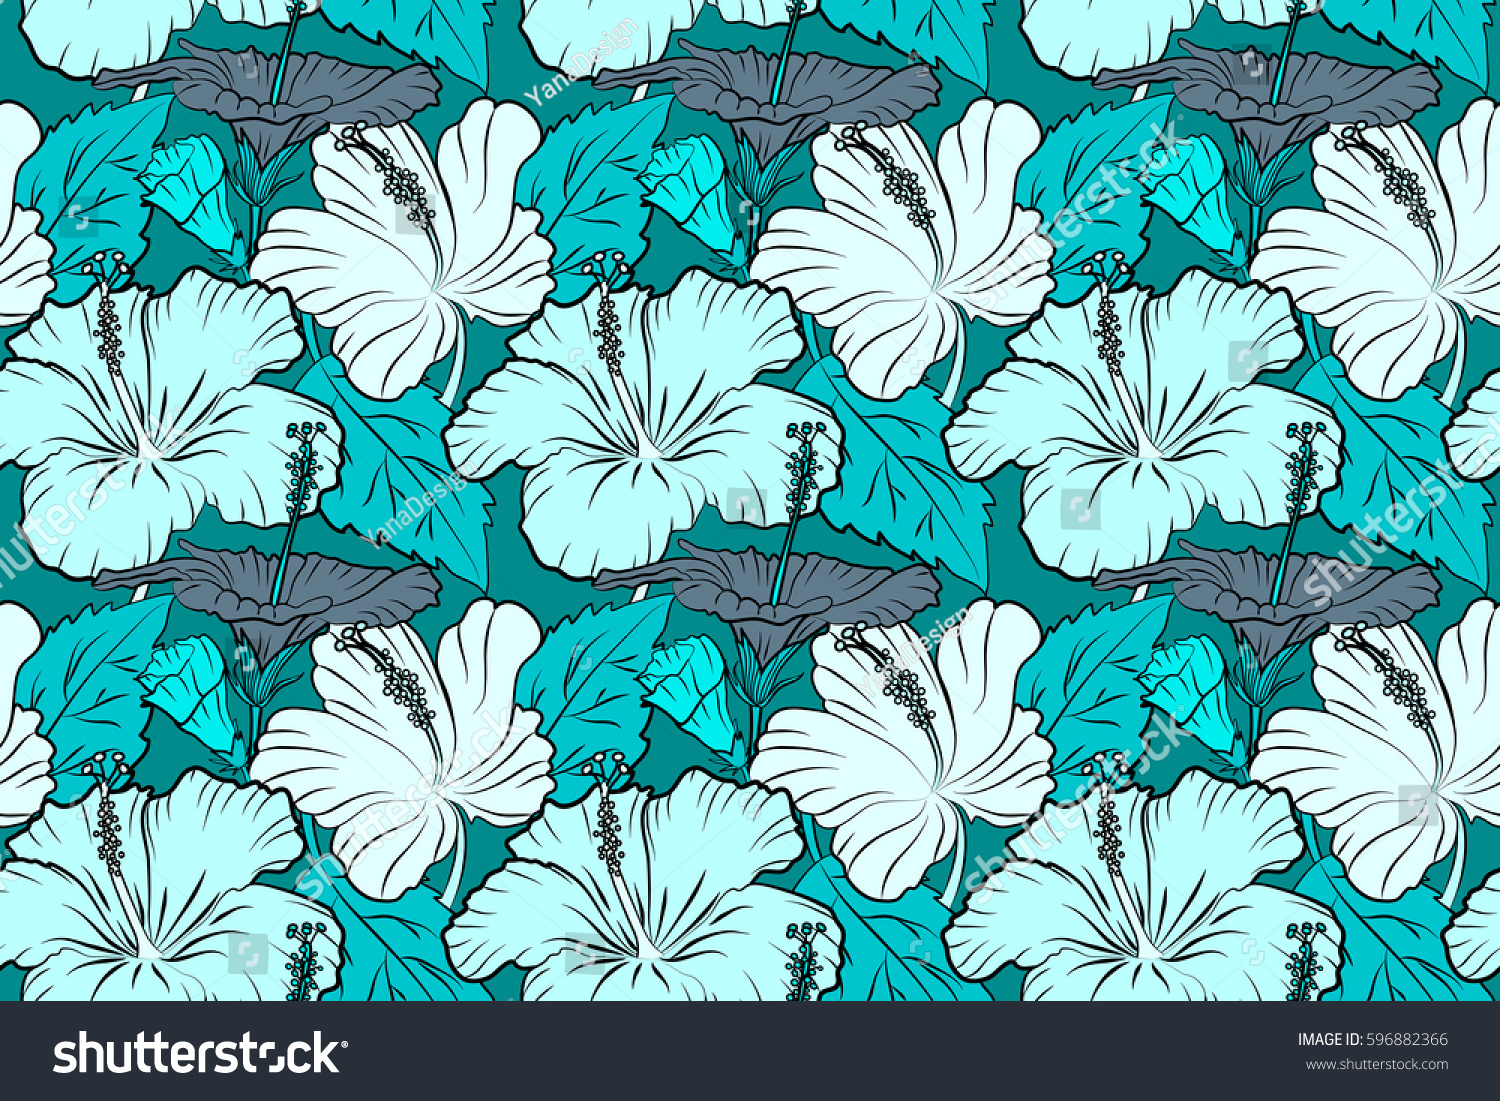 Motley Illustration Seamless Exotic Pattern With Blue Tropical